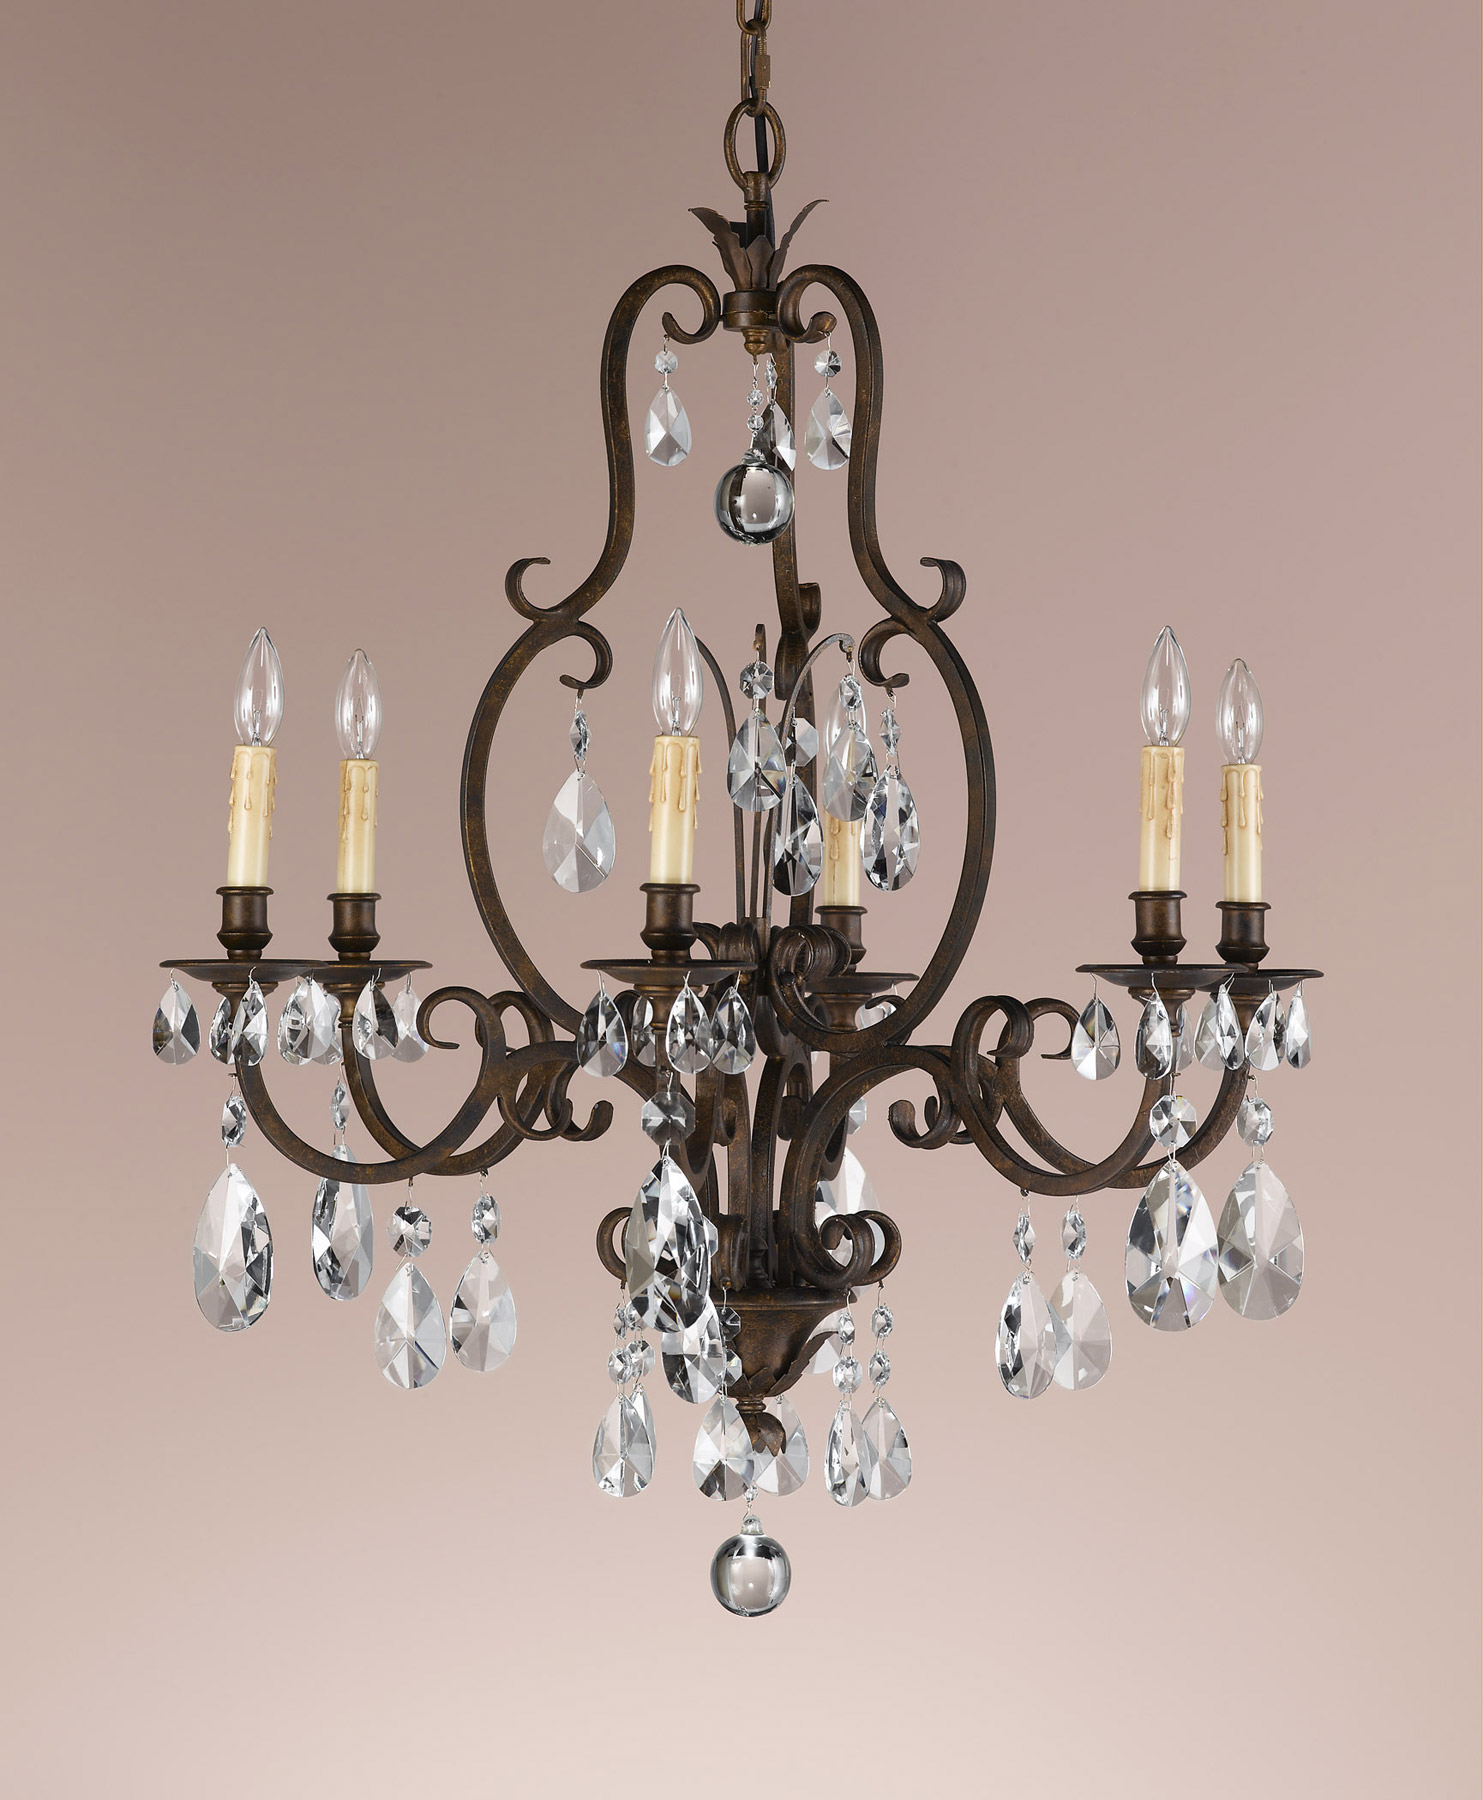 Murray Feiss Fusion Collection: Murray Feiss F2228/6ATS Crystal Salon Maison Six Light